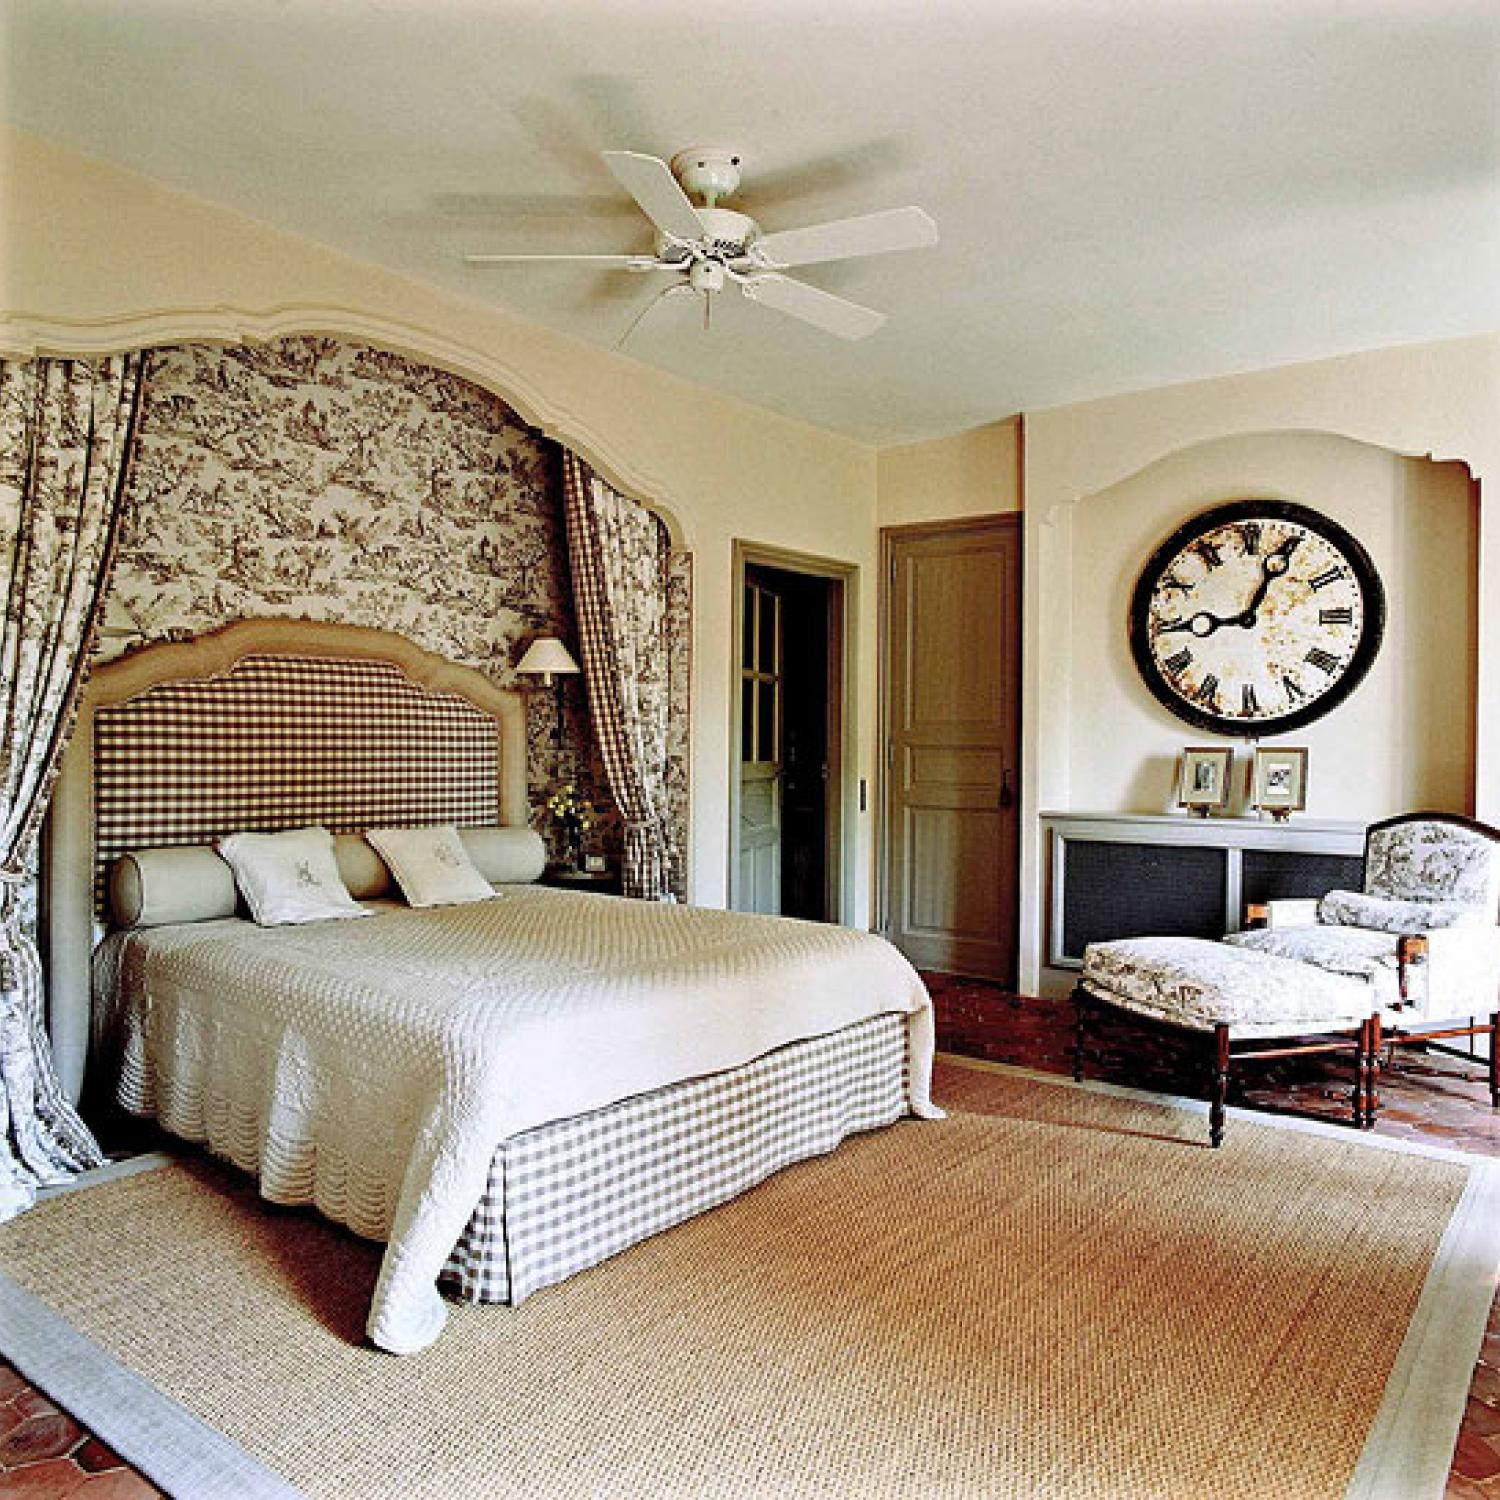 Bedroom Photos Decorating Ideas Bedroom Decorating Ideas Totally Toile Traditional Home